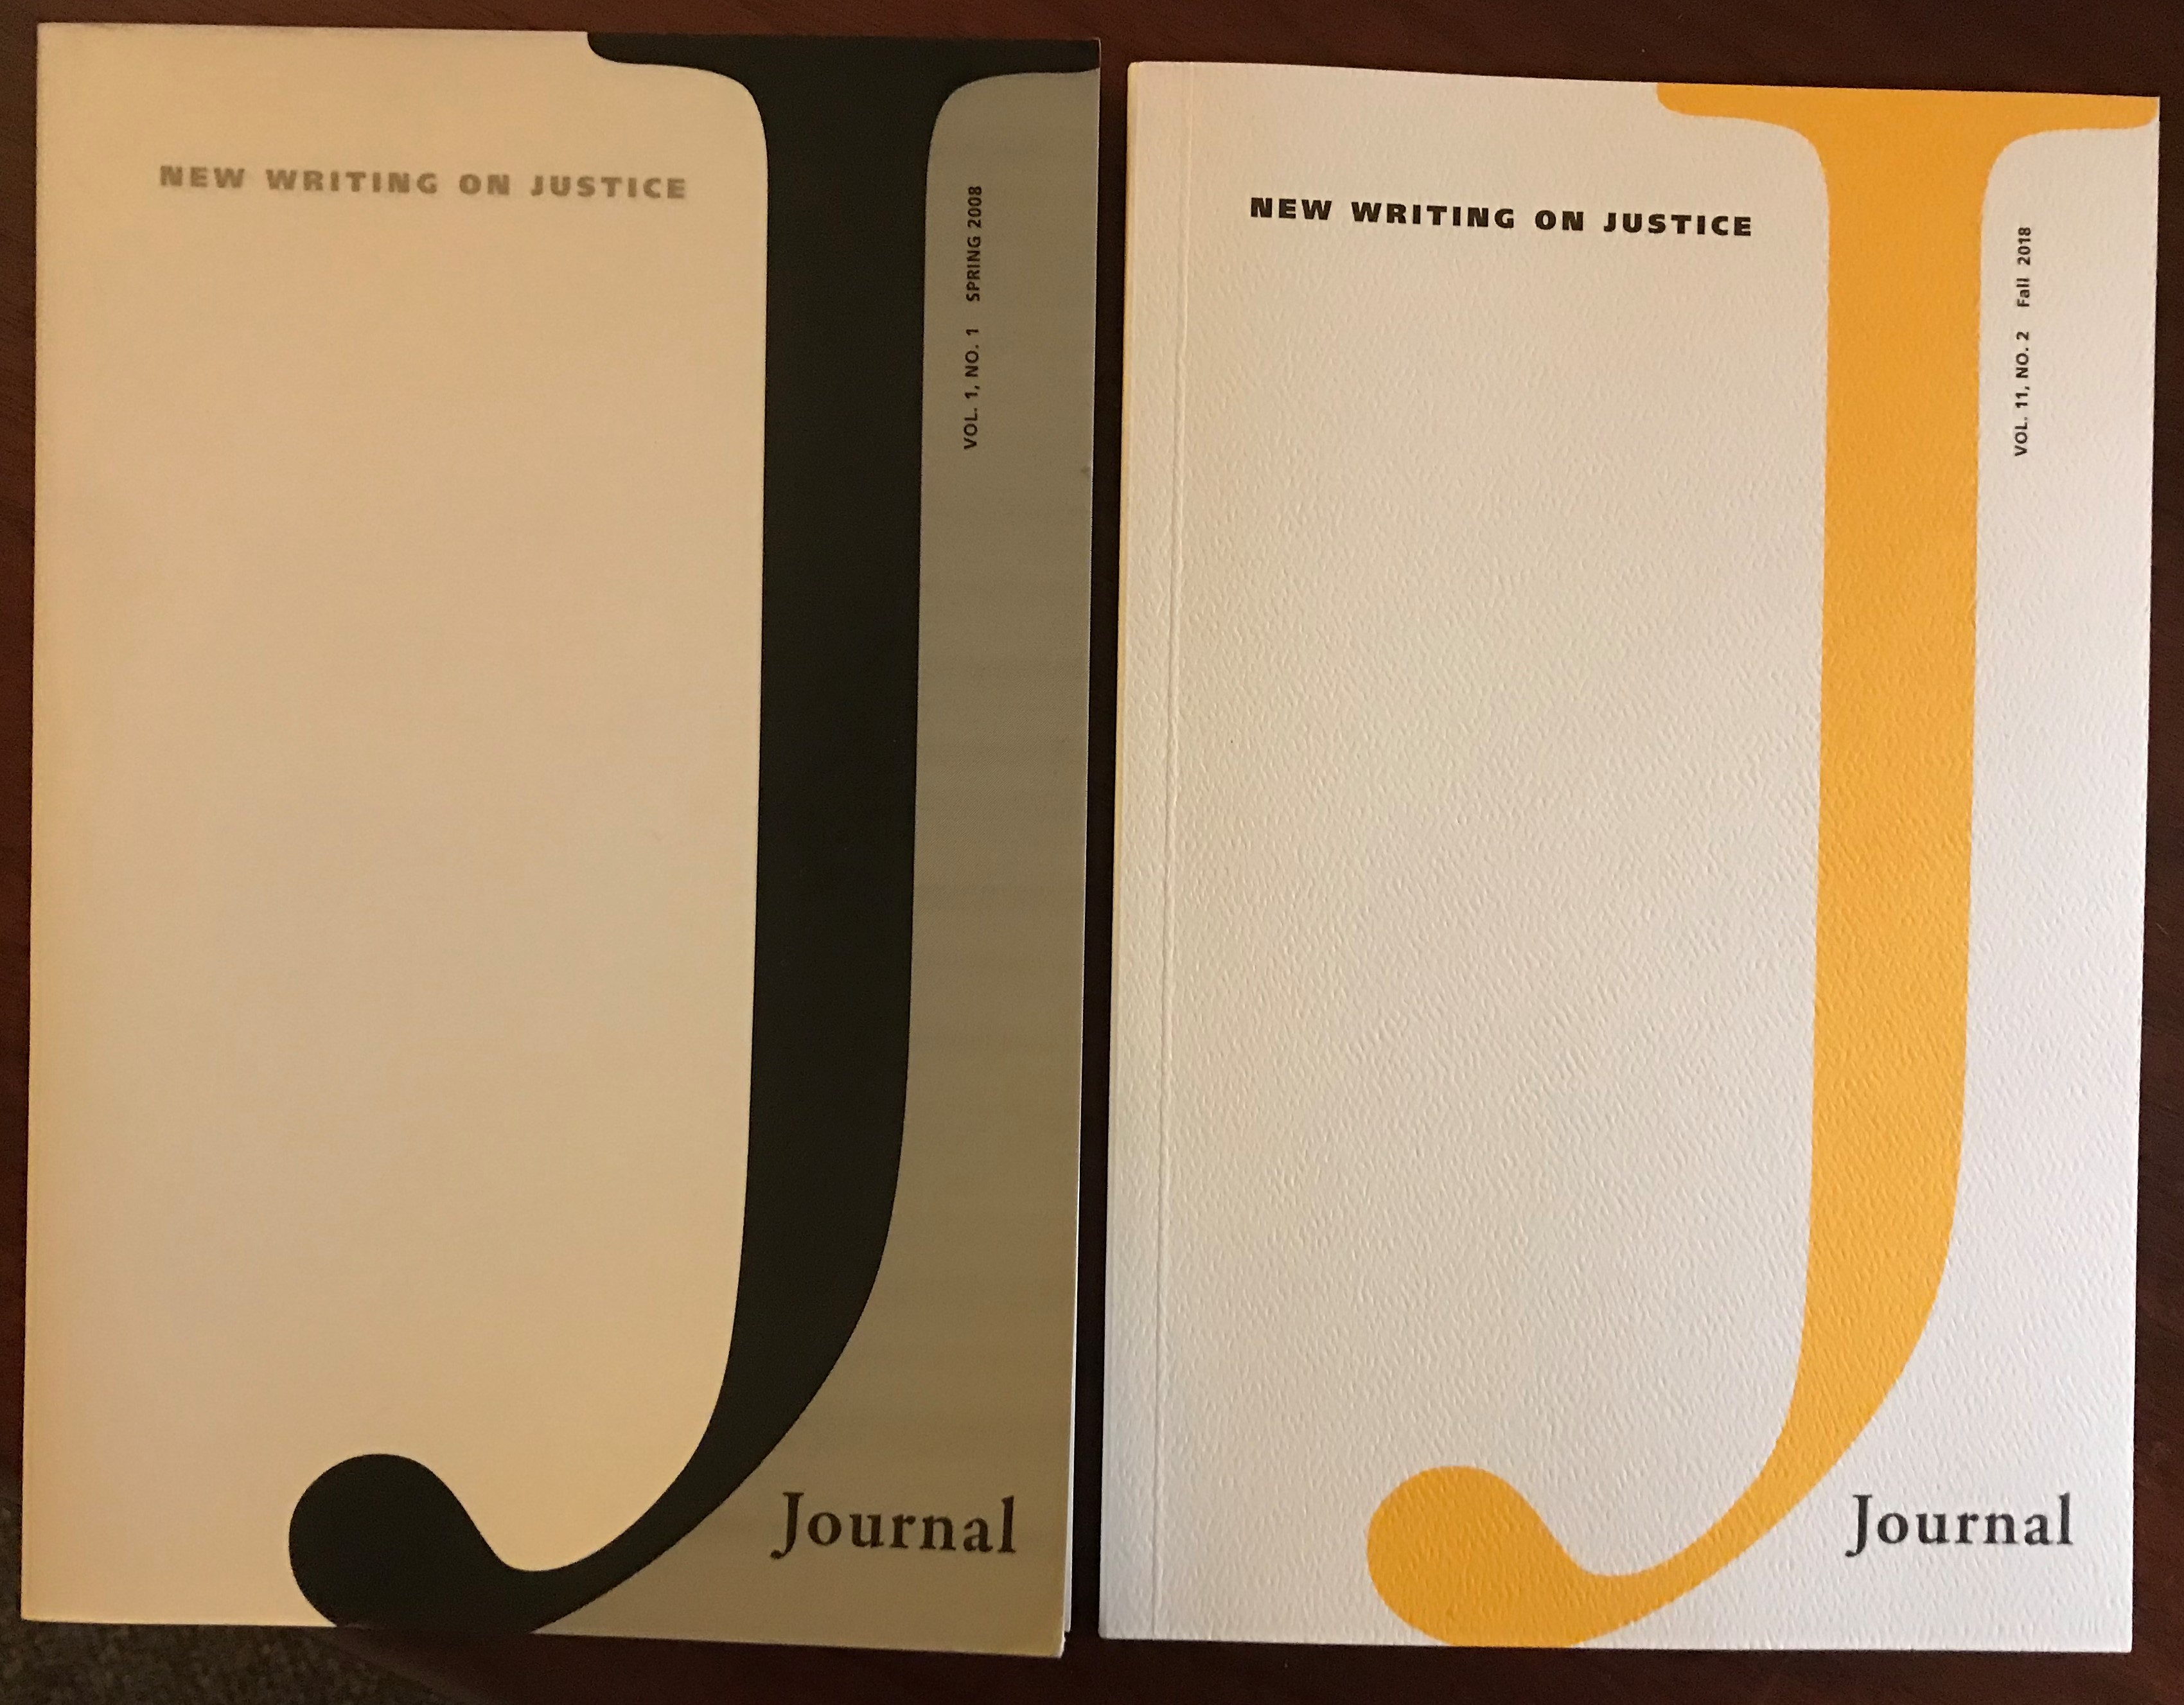 Cover art J Journal, issues 1 and 23